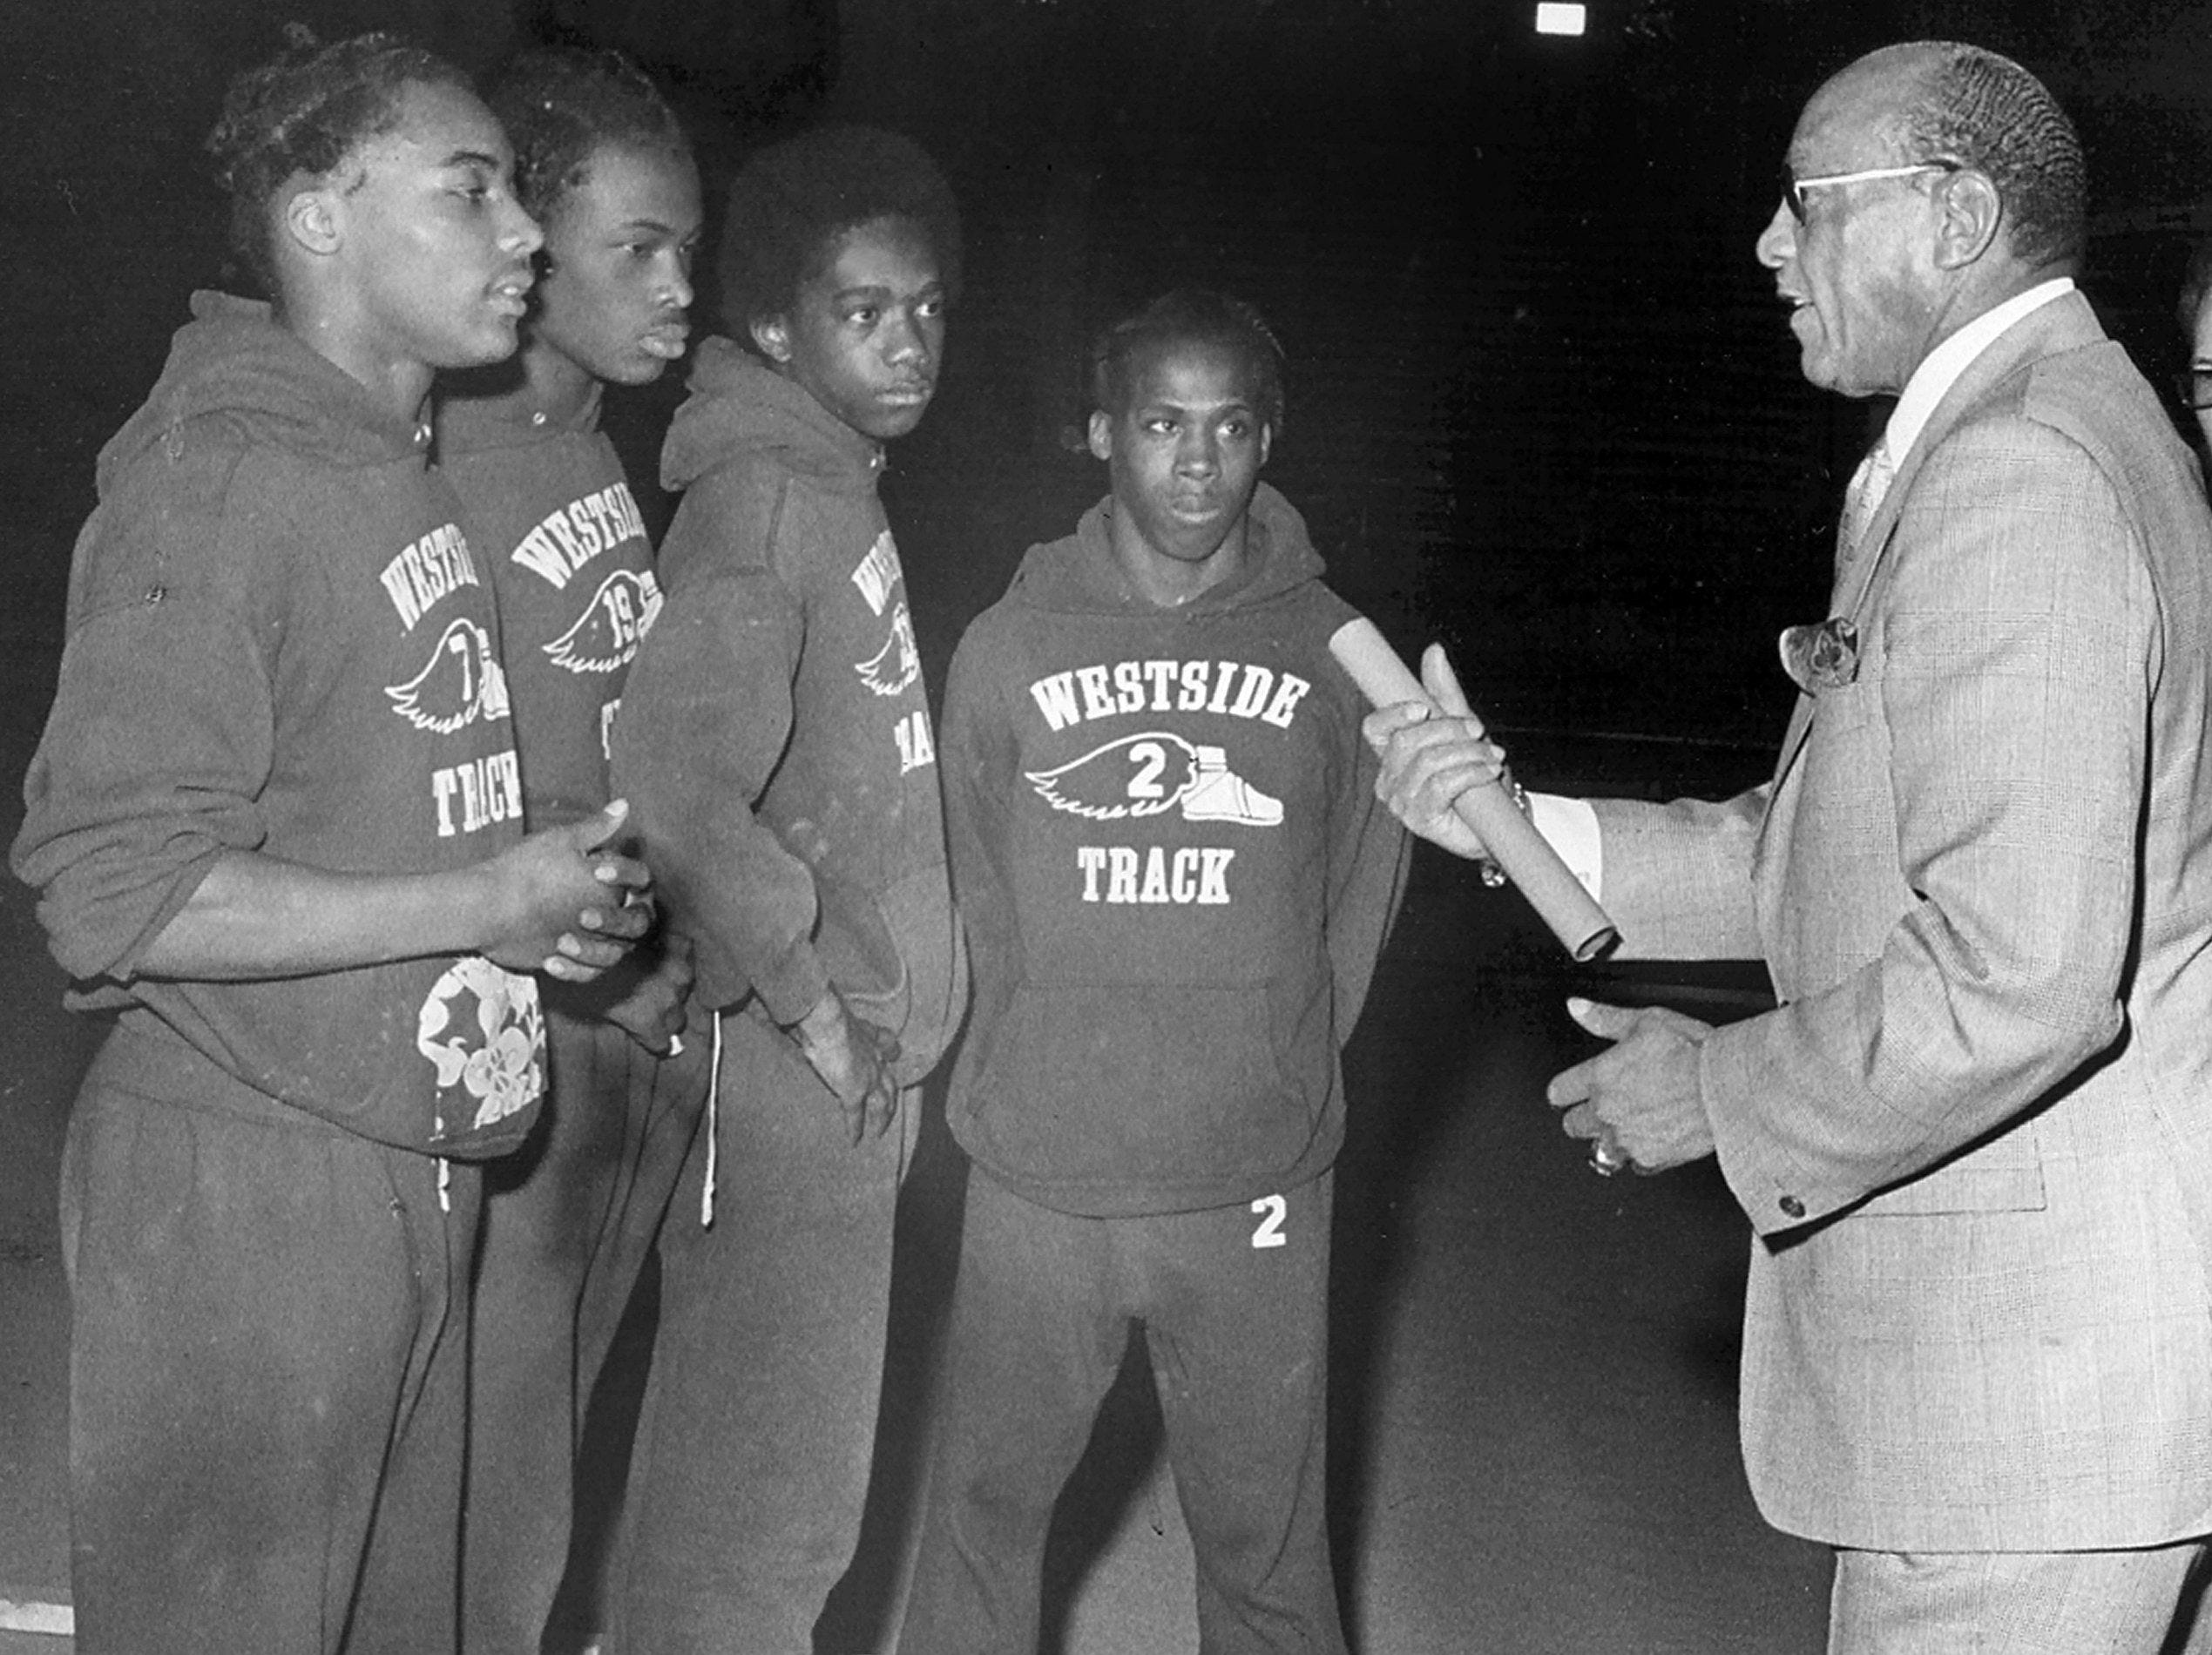 Jessie Owens (Right) discusses track with Westside High School team members (From Left) Michael Jones, Barry Hester, Donald Gray and Lee Caraway in January 1976. Owens captured four gold medals at the 1936 Olympics in Berlin and is still as much a symbol of the Olympics to most Americans an any athlete since Jim Thorpe, tirelessly touring the country on fund raising tours for the Olympic team. He's on the road ten months each year.